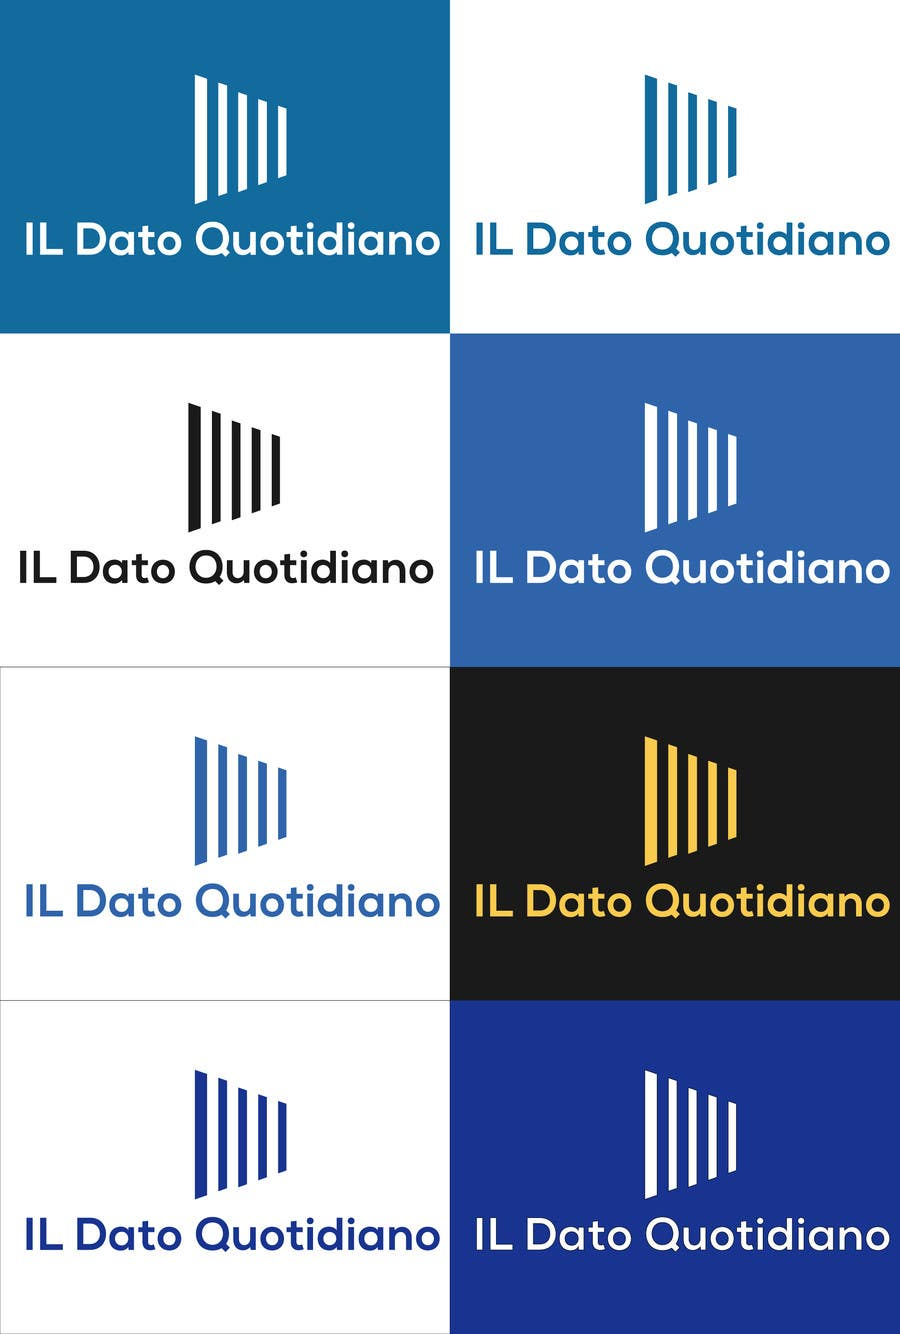 Konkurrenceindlæg #32 for Data Journalism site logo - Il Dato Quotidiano